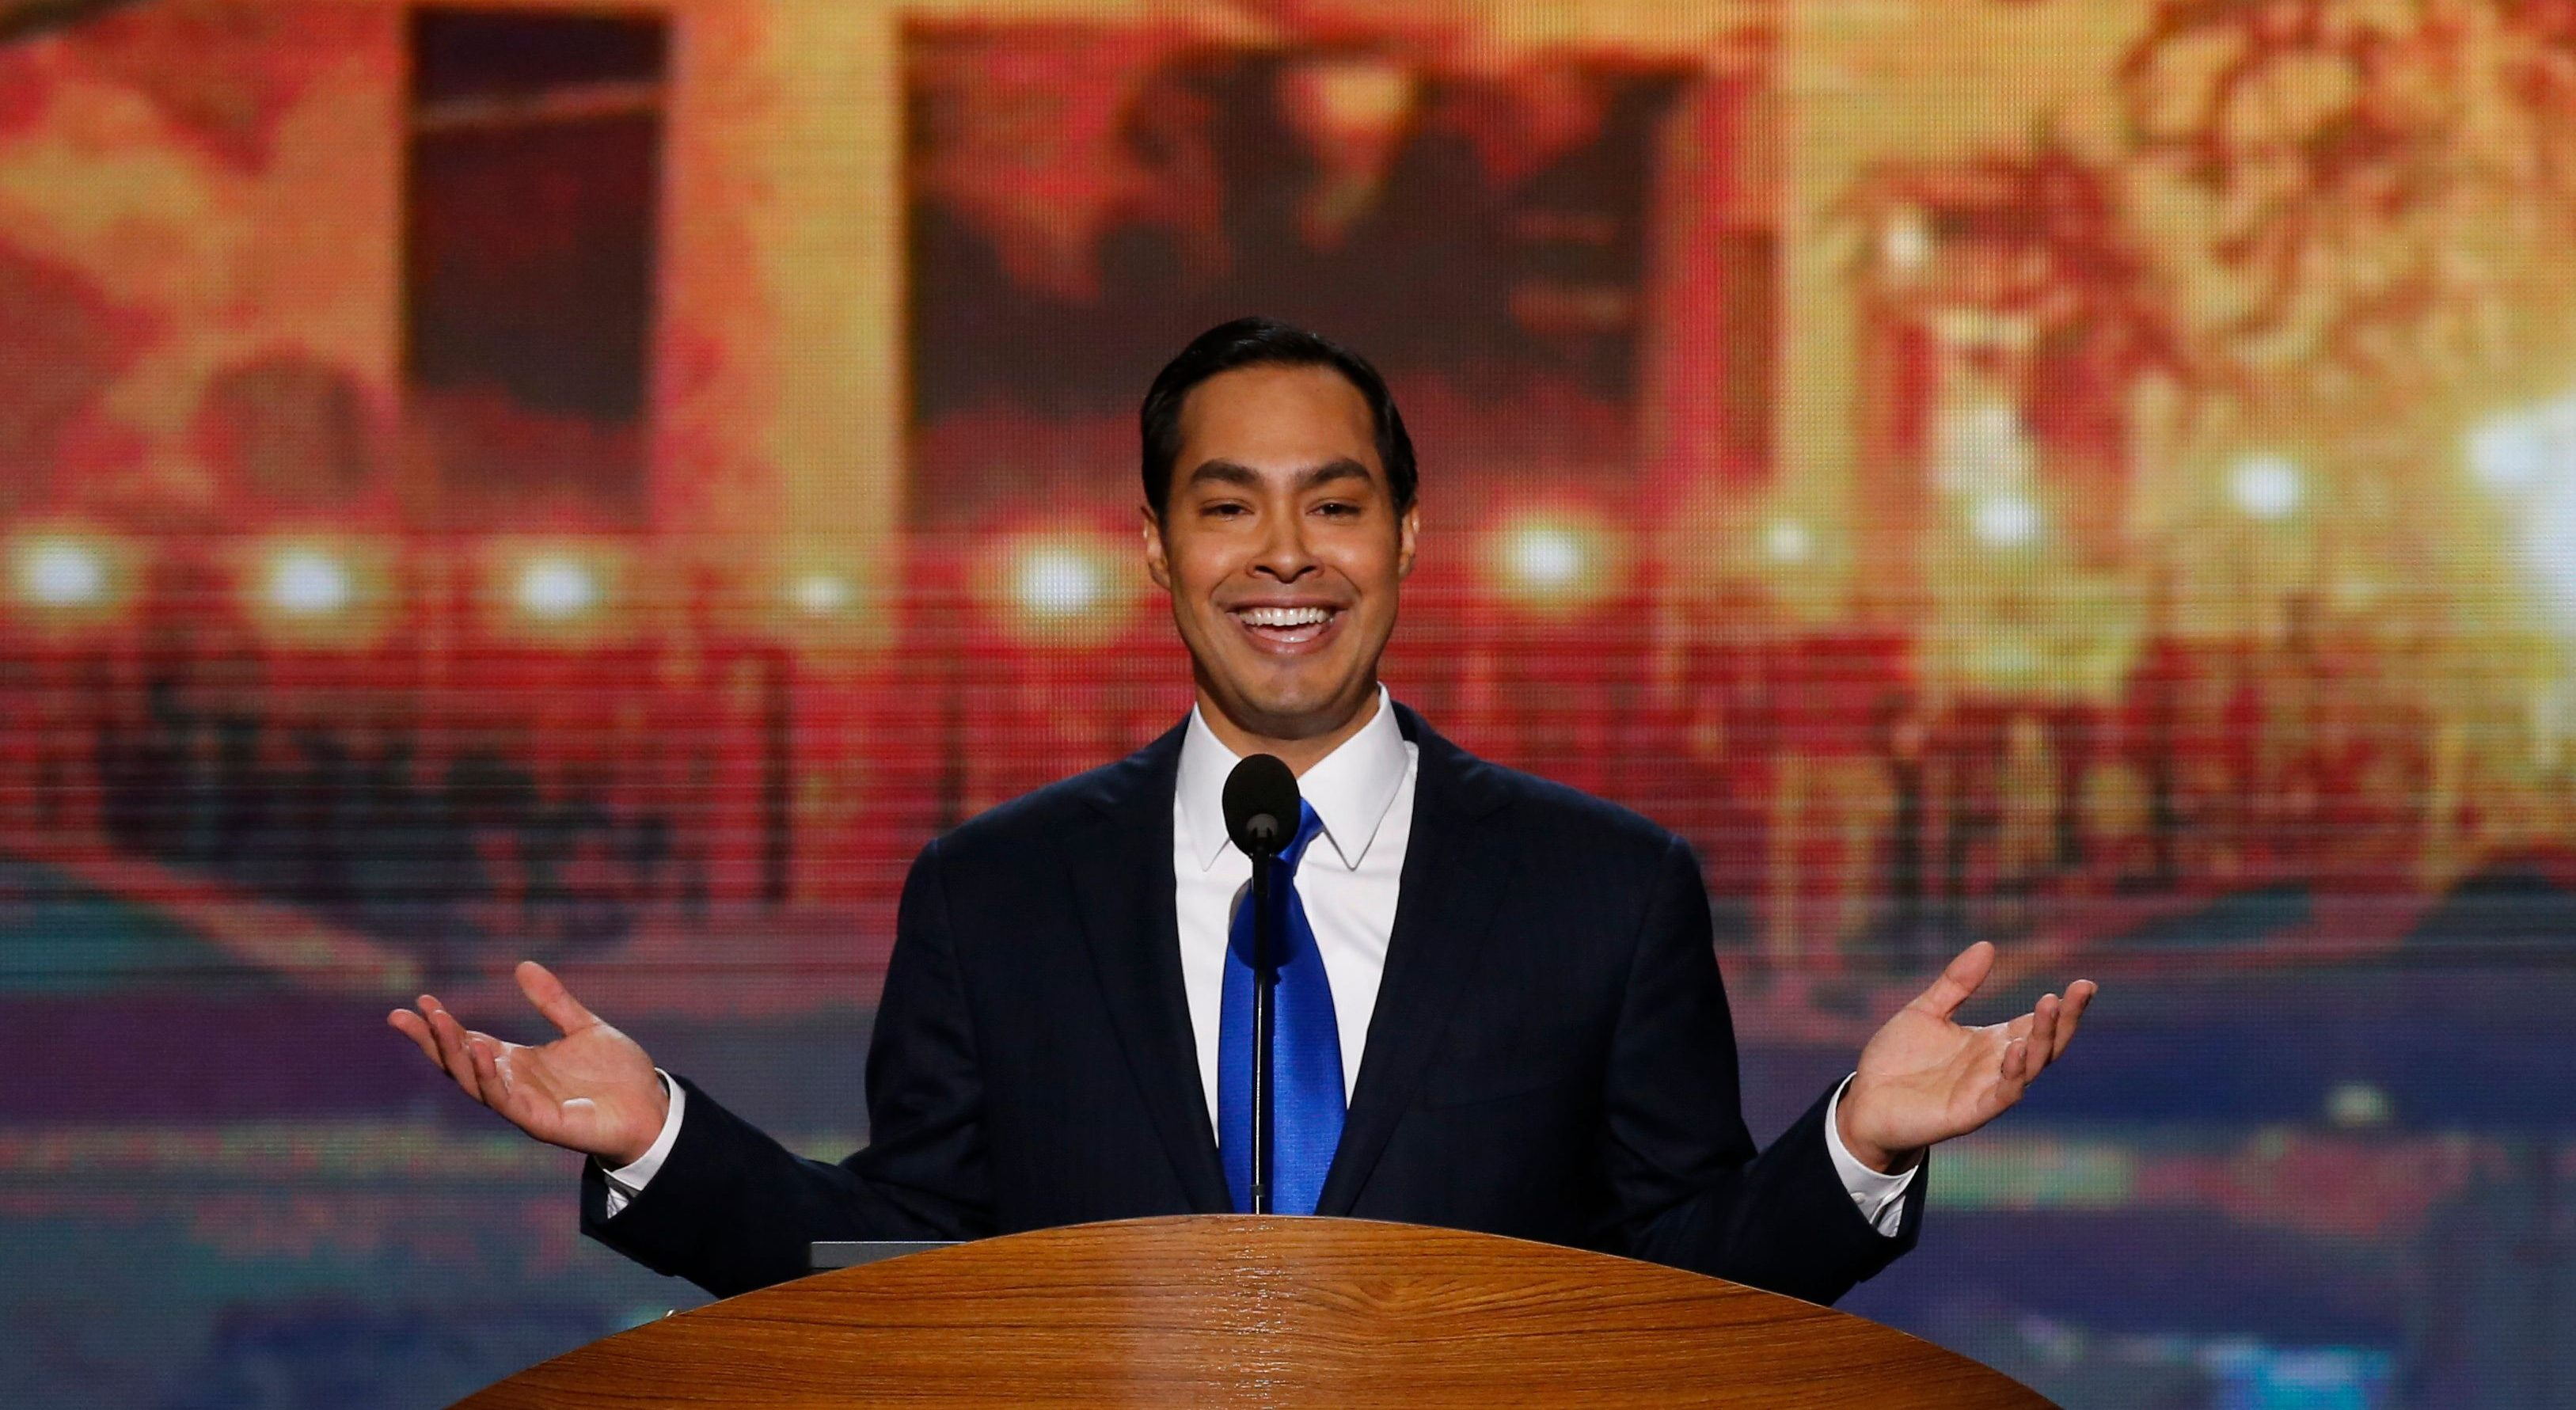 Julian Castro, Mayor of San Antonio, Texas, delivers the keynote address during the first day of the Democratic National Convention in Charlotte, North Carolina, September 4, 2012.